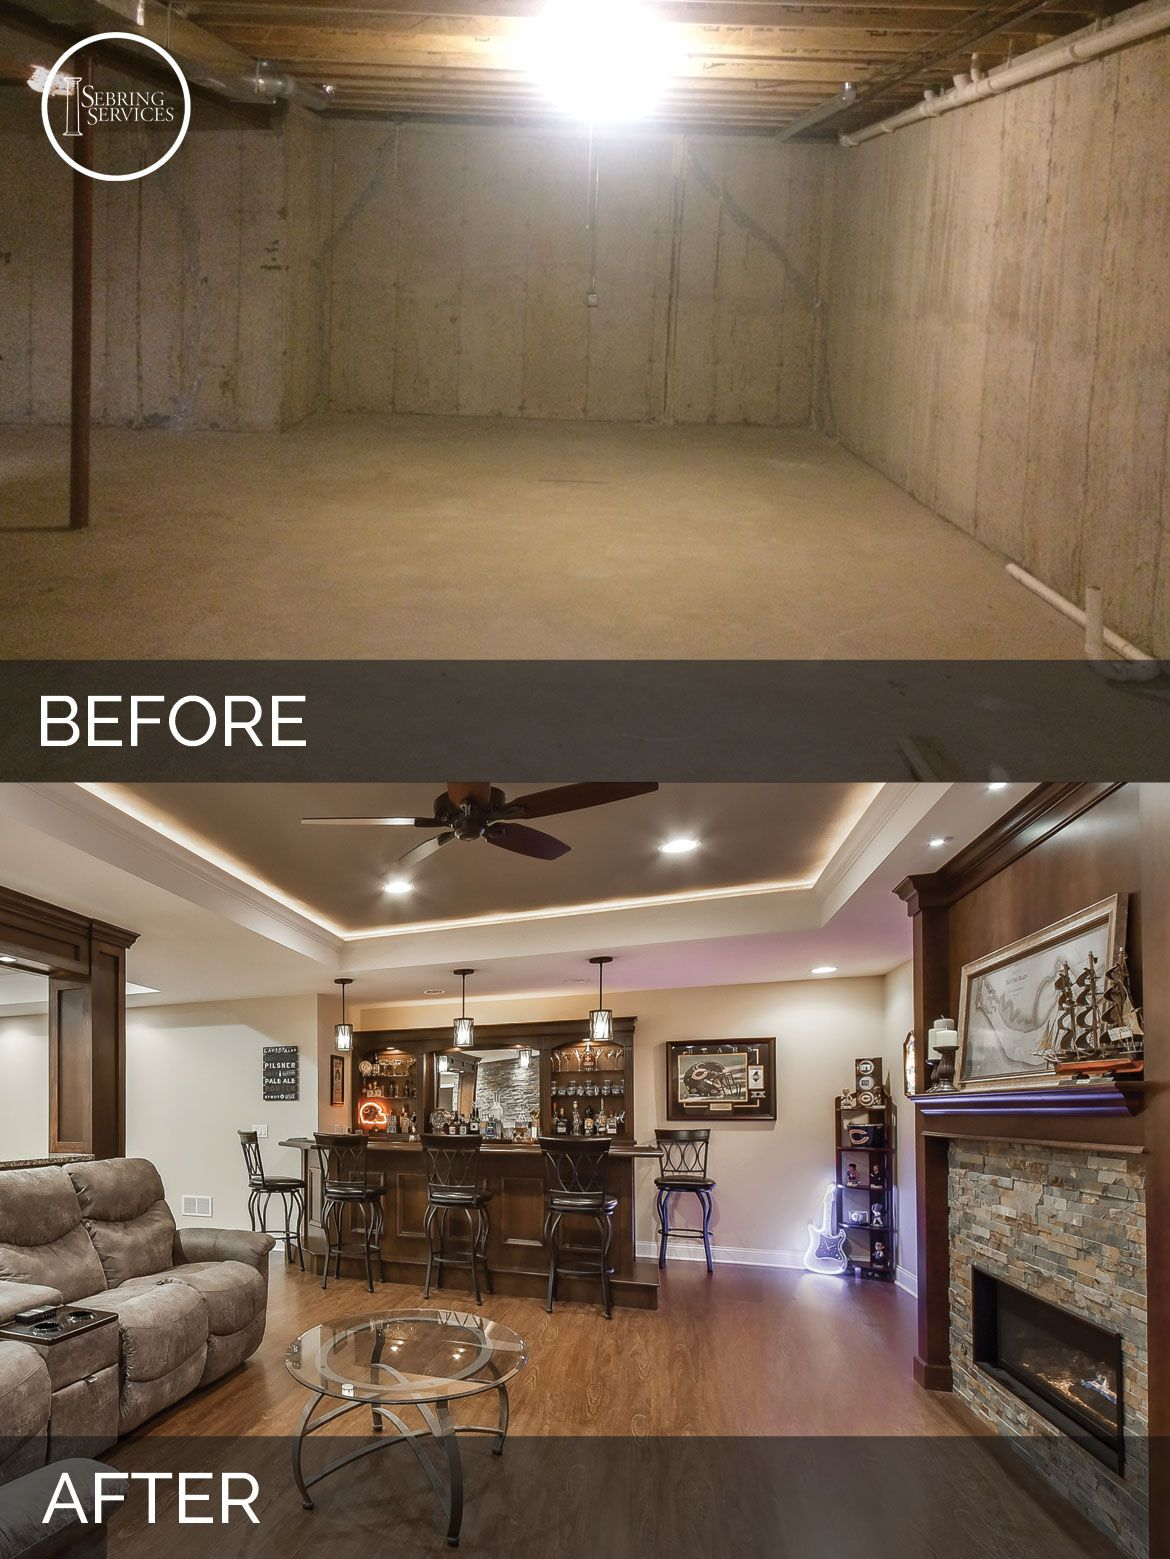 Brian Kelli S Basement Before After Pictures Basement